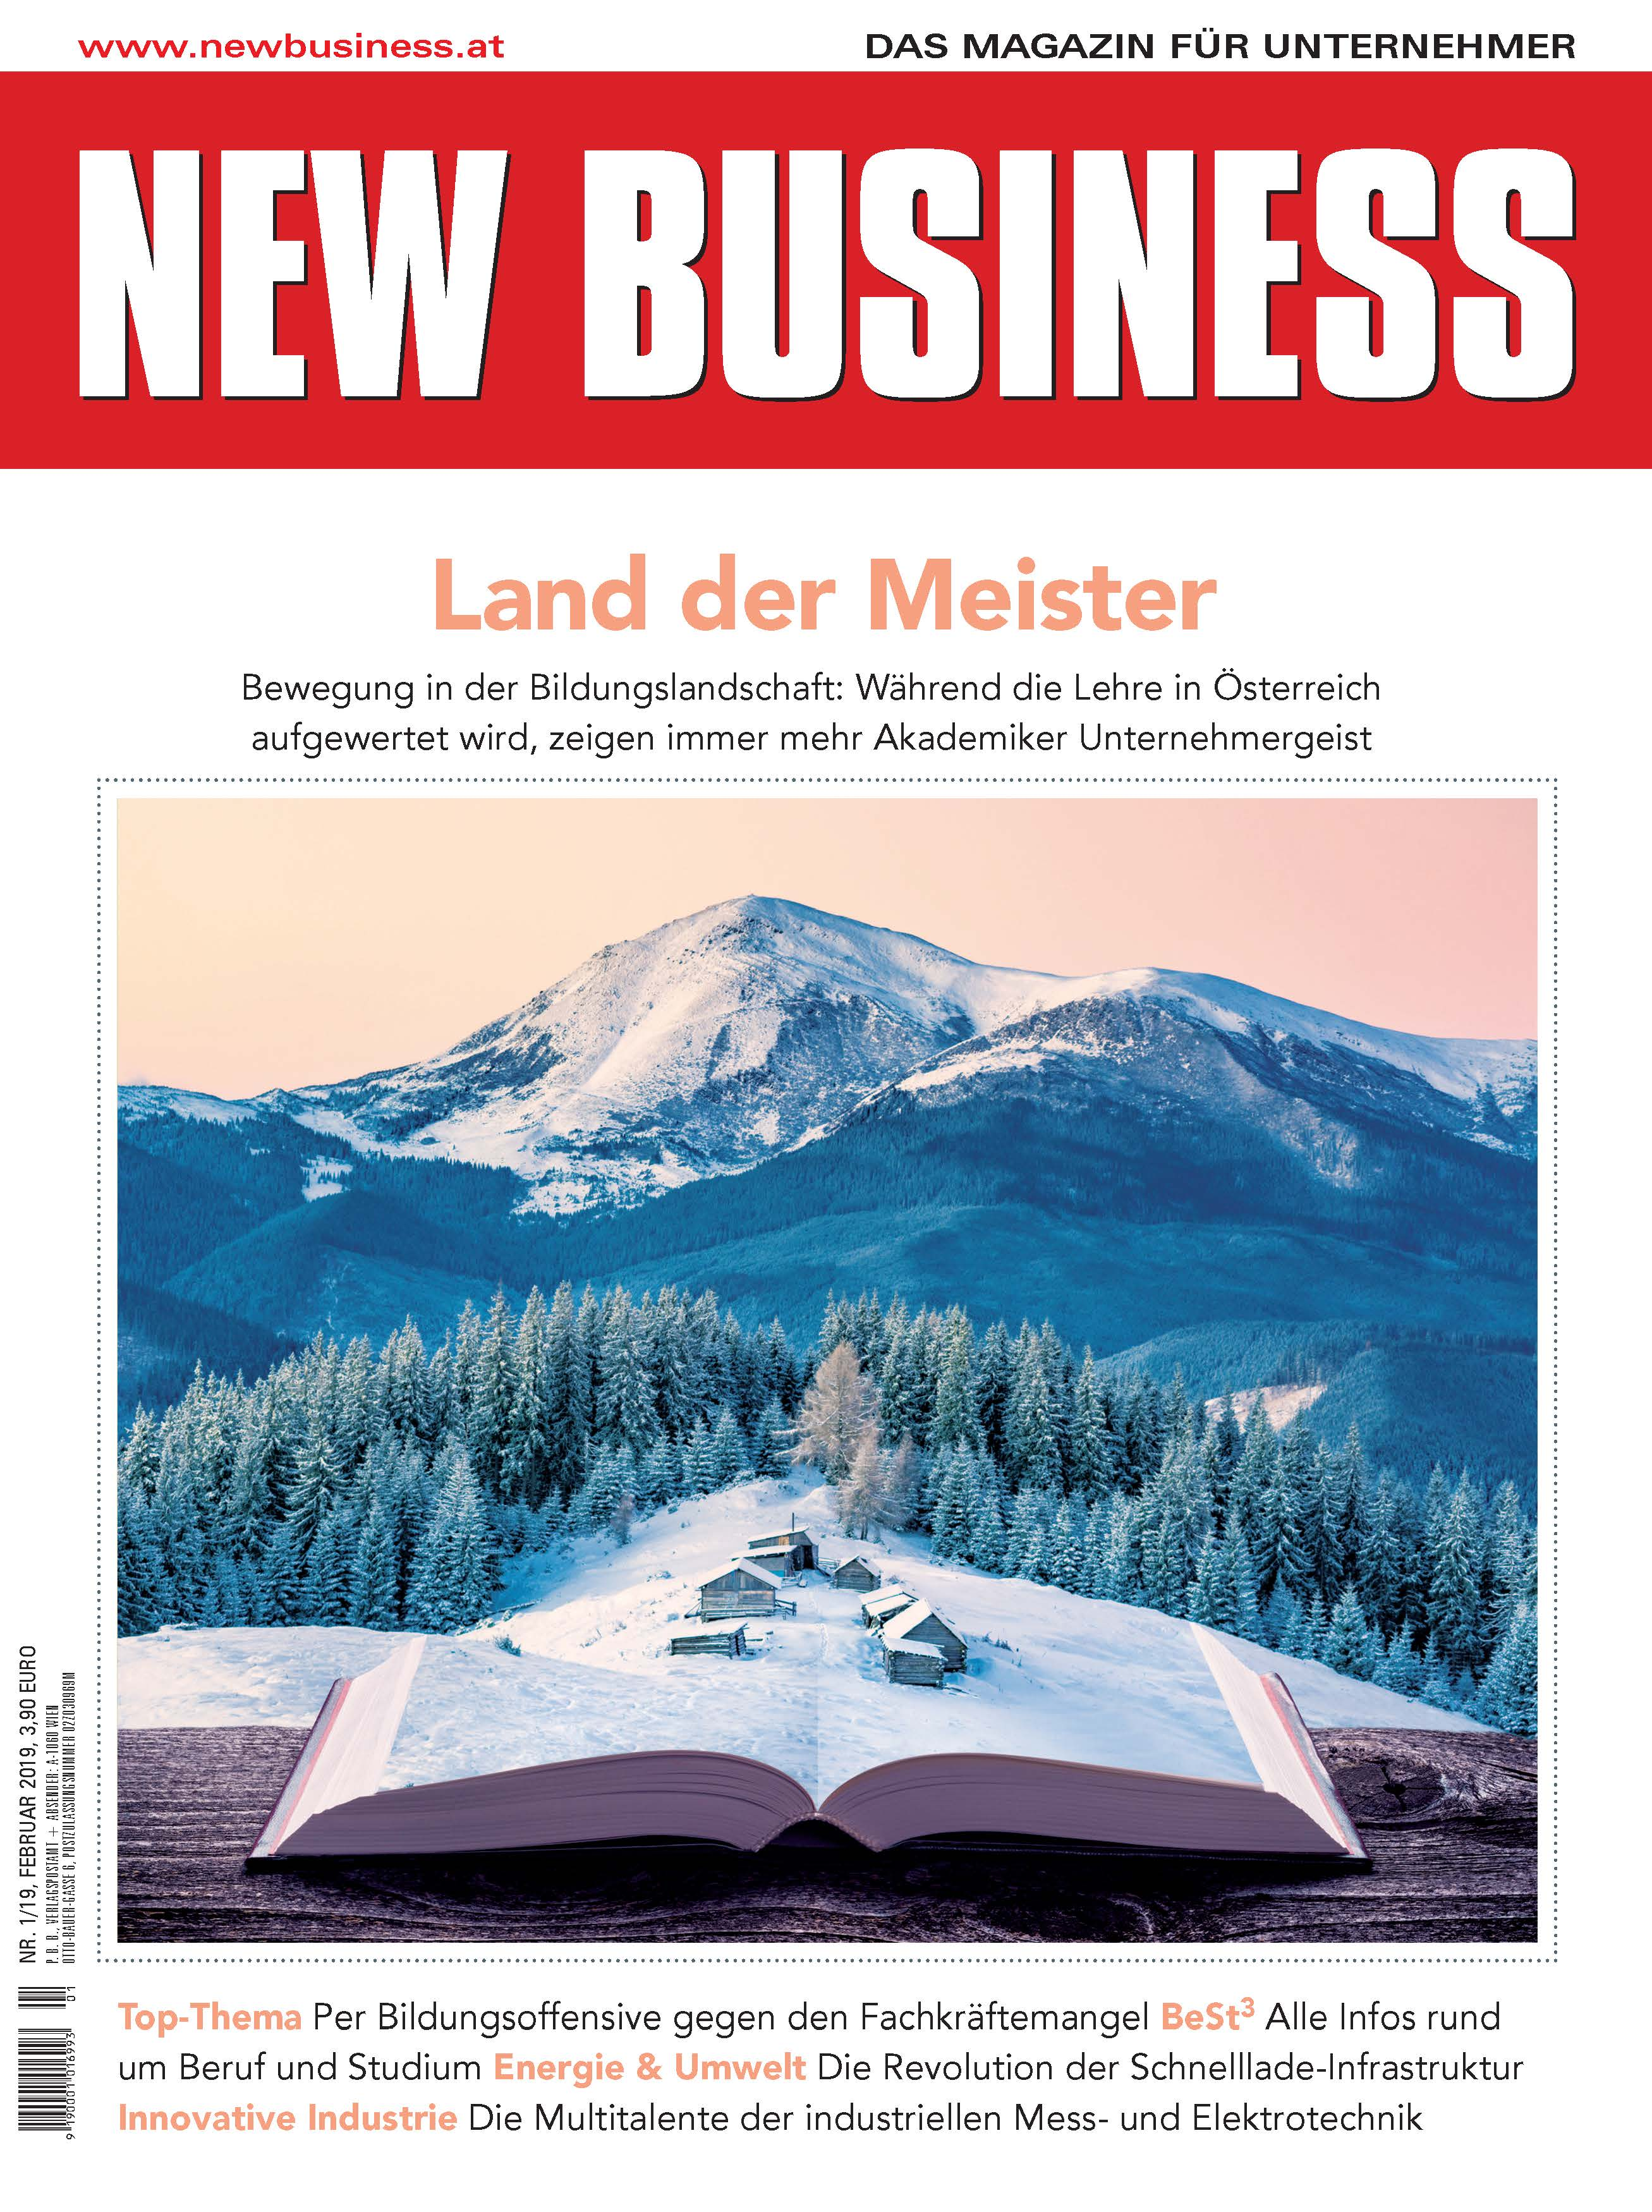 Cover: NEW BUSINESS - NR. 1, FEBRUAR 2019